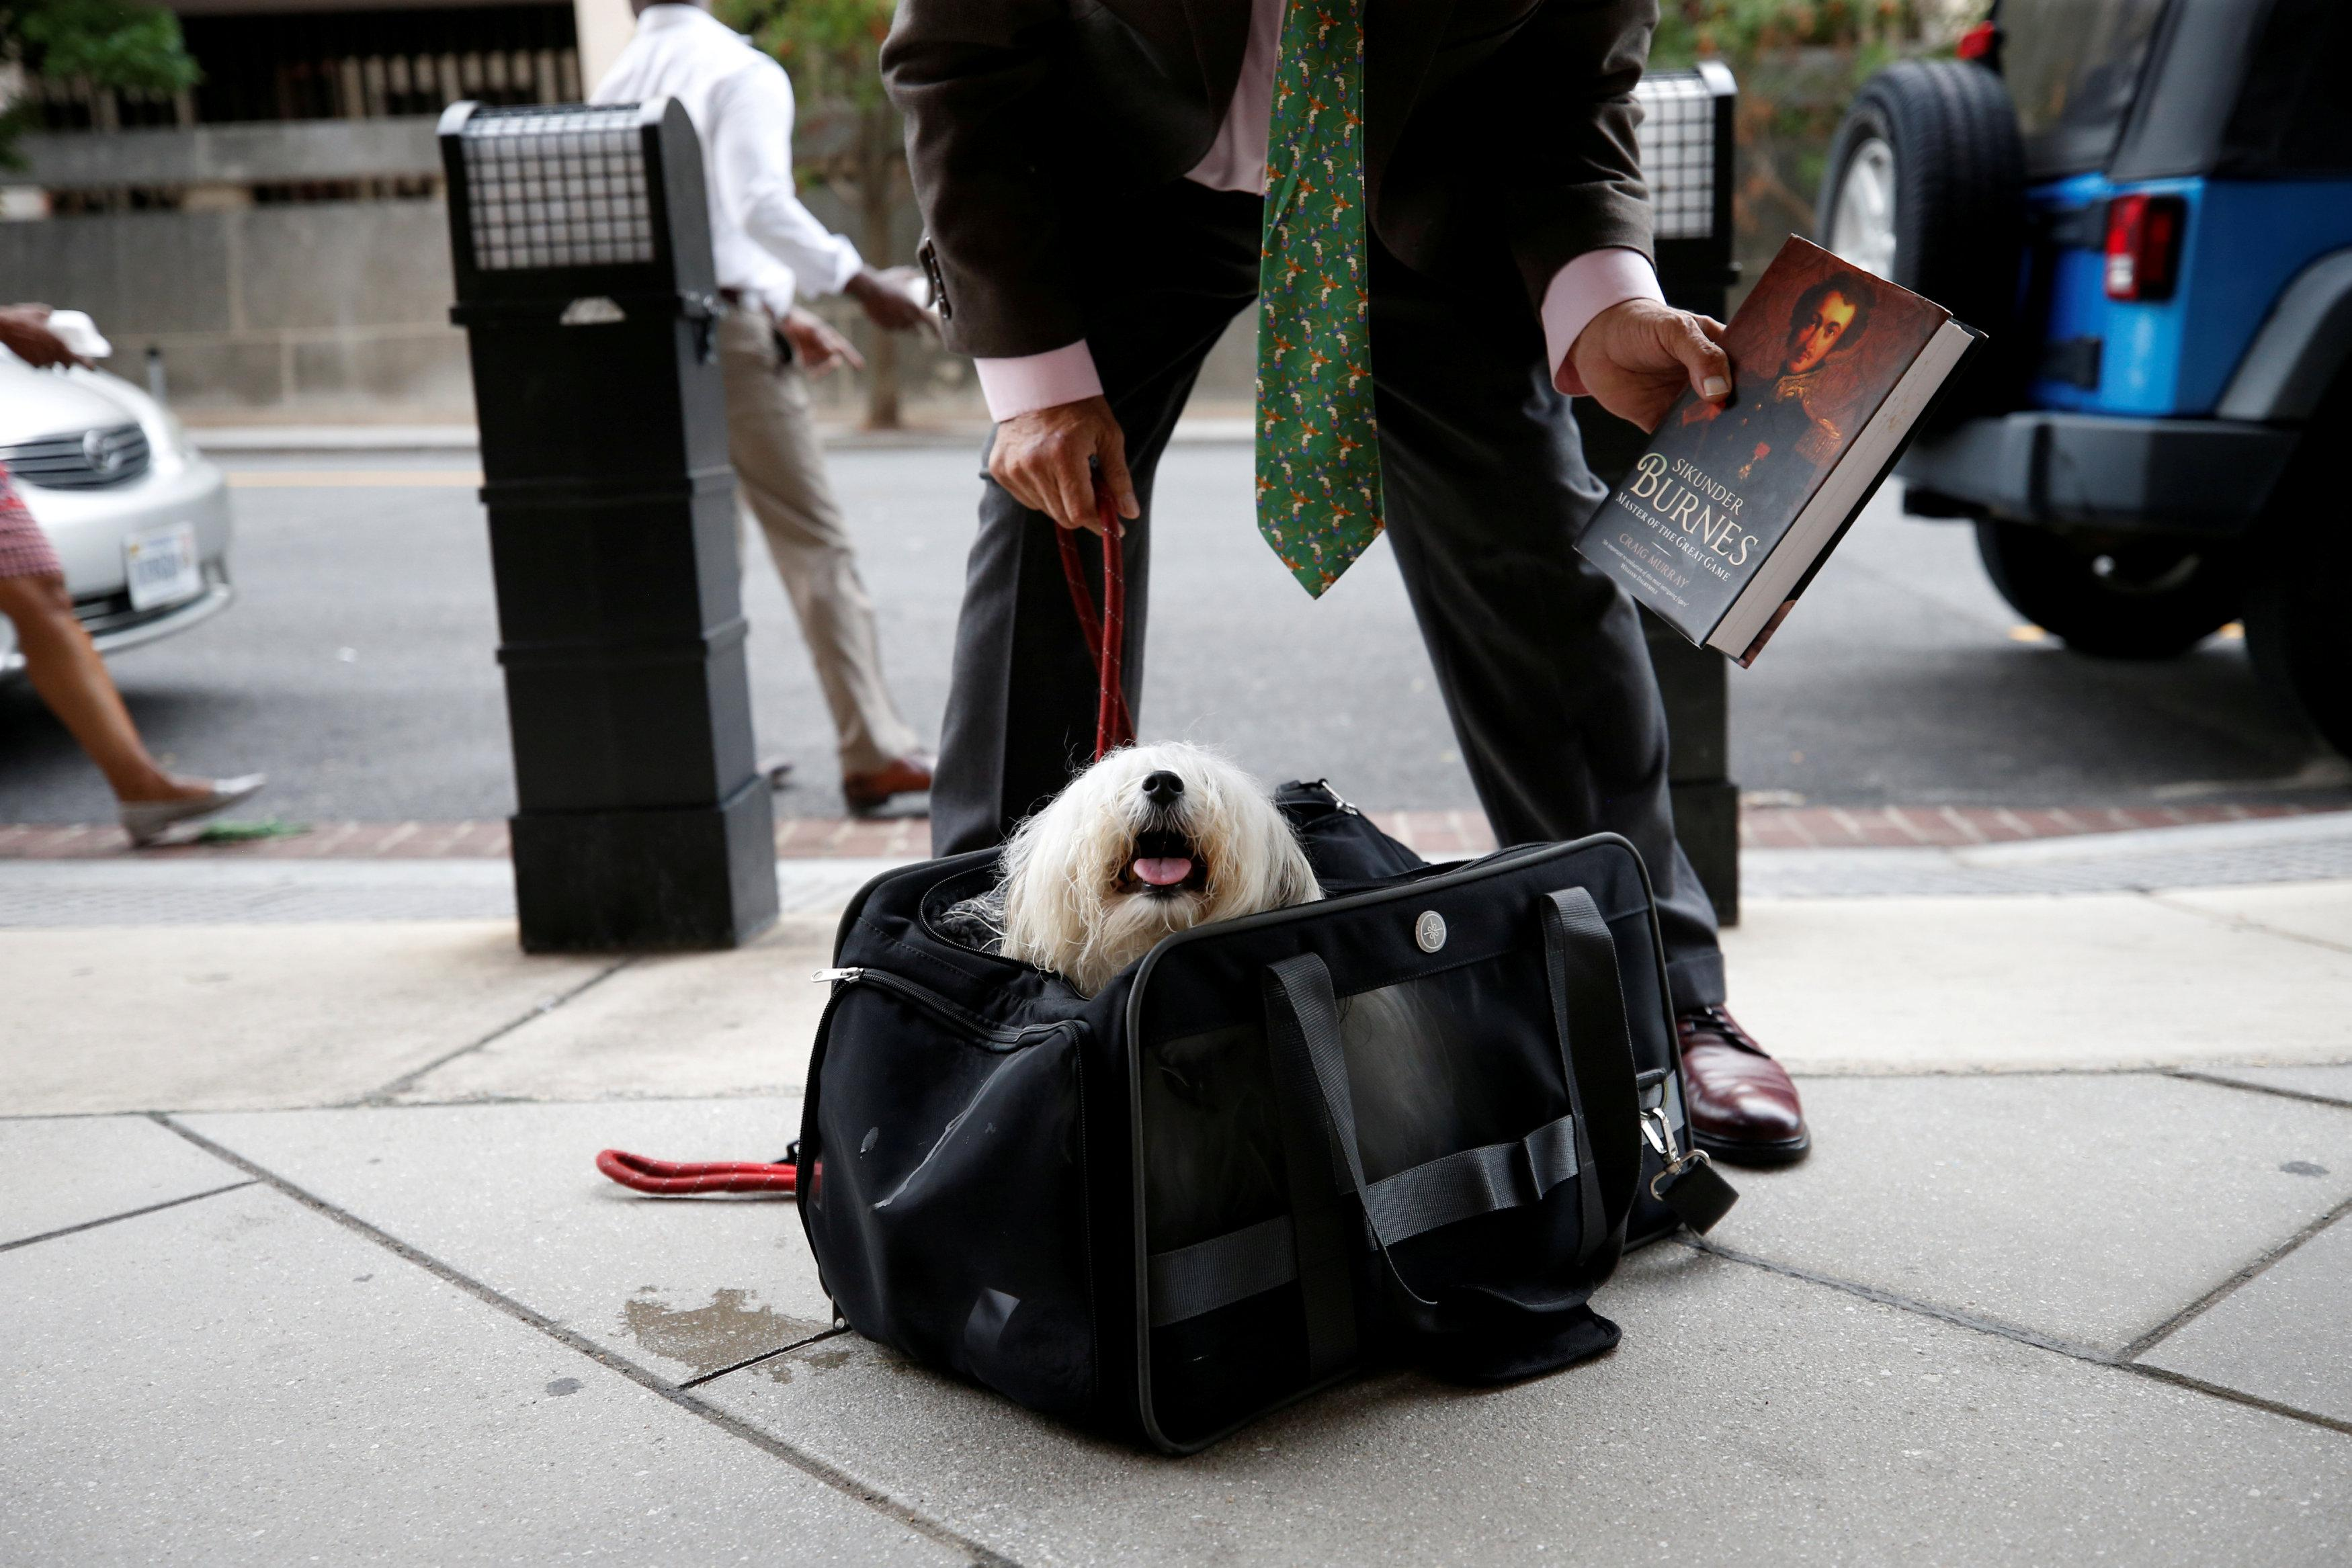 Randy Credico, an associate of former Trump campaign adviser Roger Stone, secures his pet dog as he arrives to testify before the grand jury convened by Special Counsel Robert Mueller at U.S. District in Washington, U.S., September 7, 2018. Chris Wattie